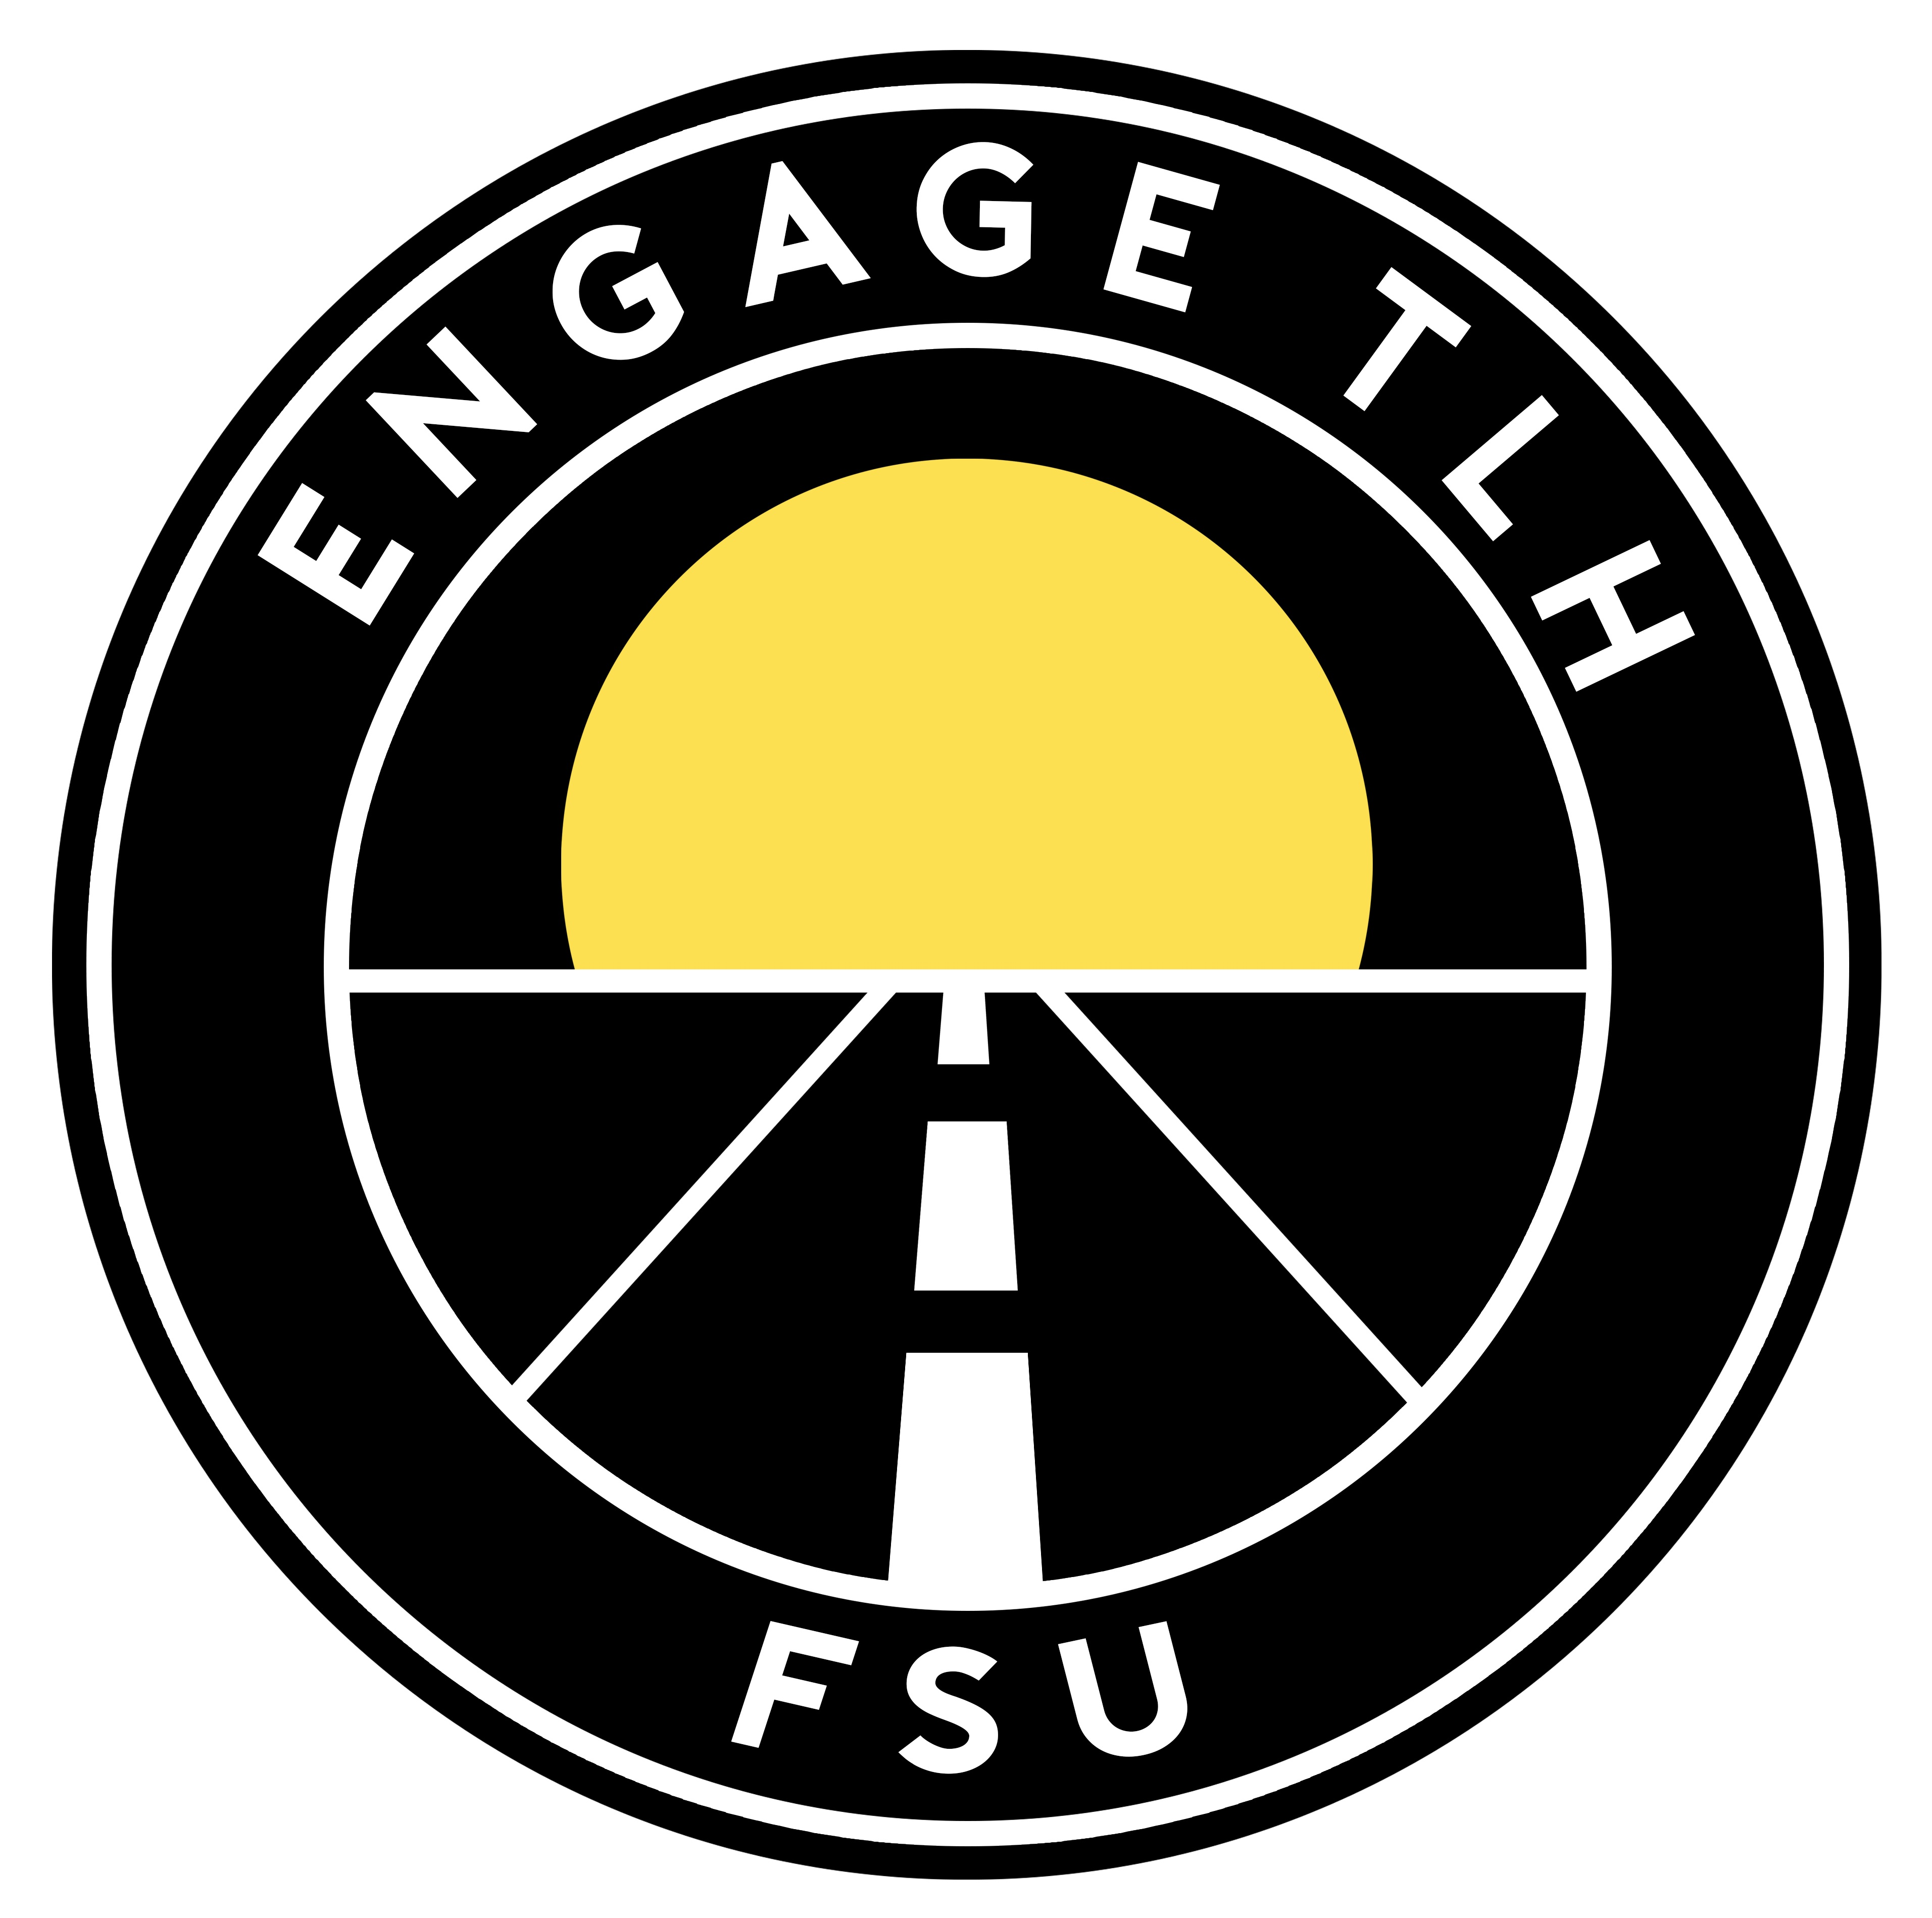 The image is the logo for Engage TLH at FSU, which depicts a two-lane road traveling toward the sun on the horizon